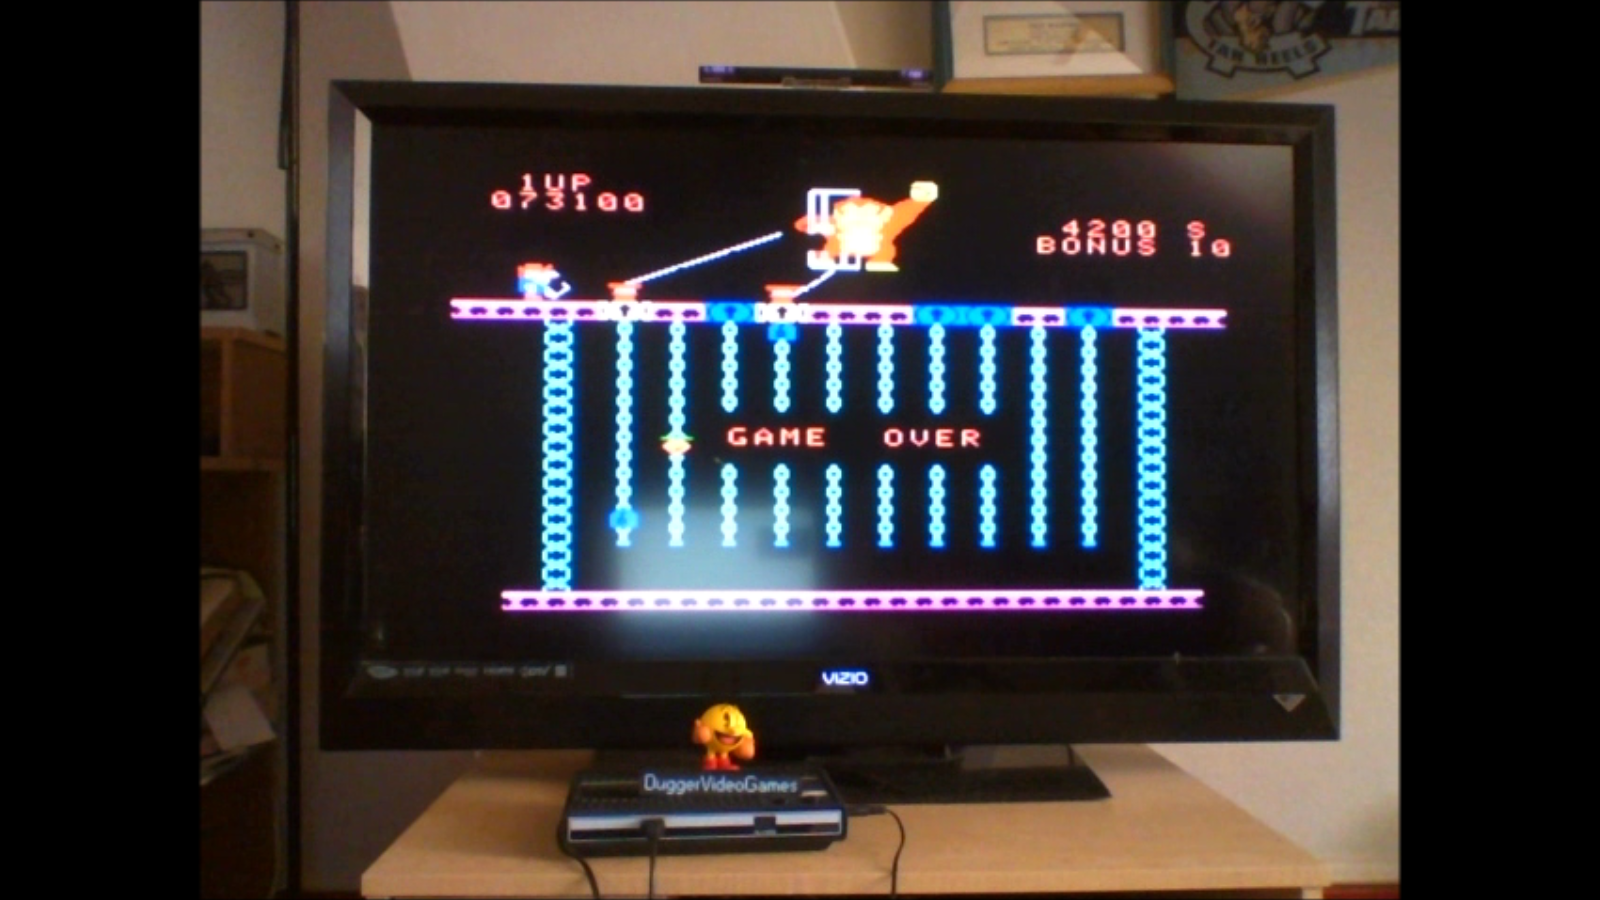 DuggerVideoGames: Donkey Kong Jr [Skill 4] (Colecovision Emulated) 73,100 points on 2016-09-22 14:30:40